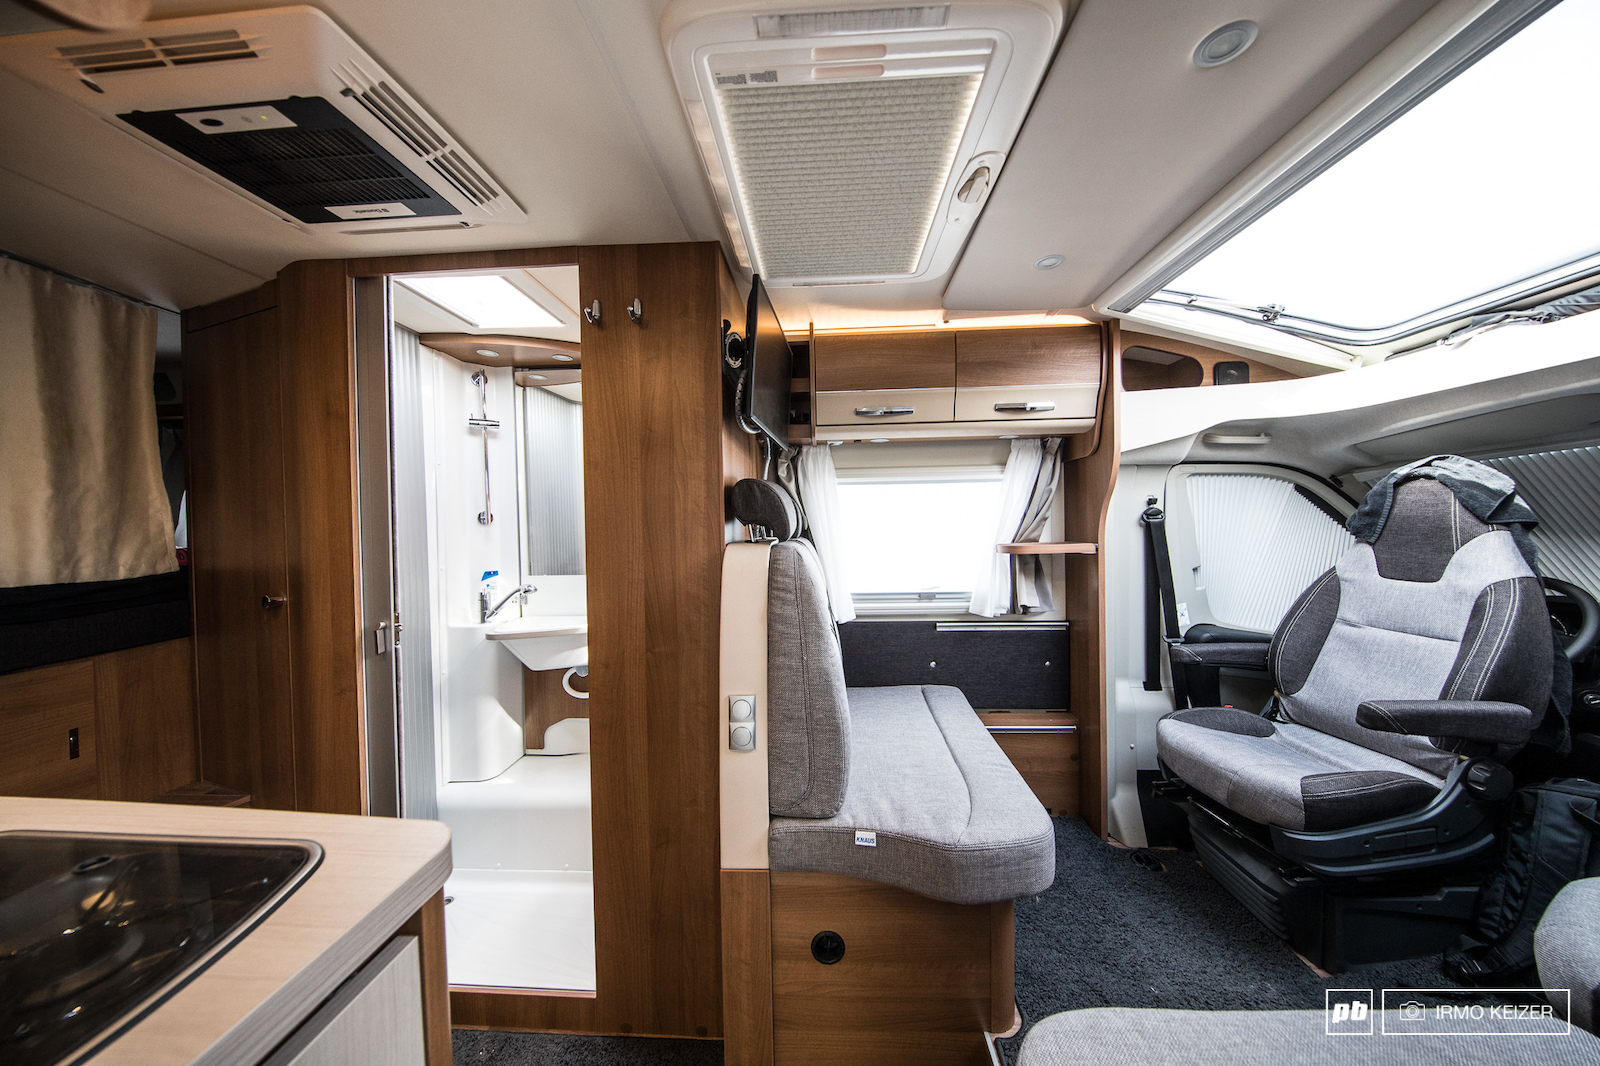 The team also owns a camper which is parked next to the teamtruck. It allows the riders to have some more privacy if needed relax and have a shower.